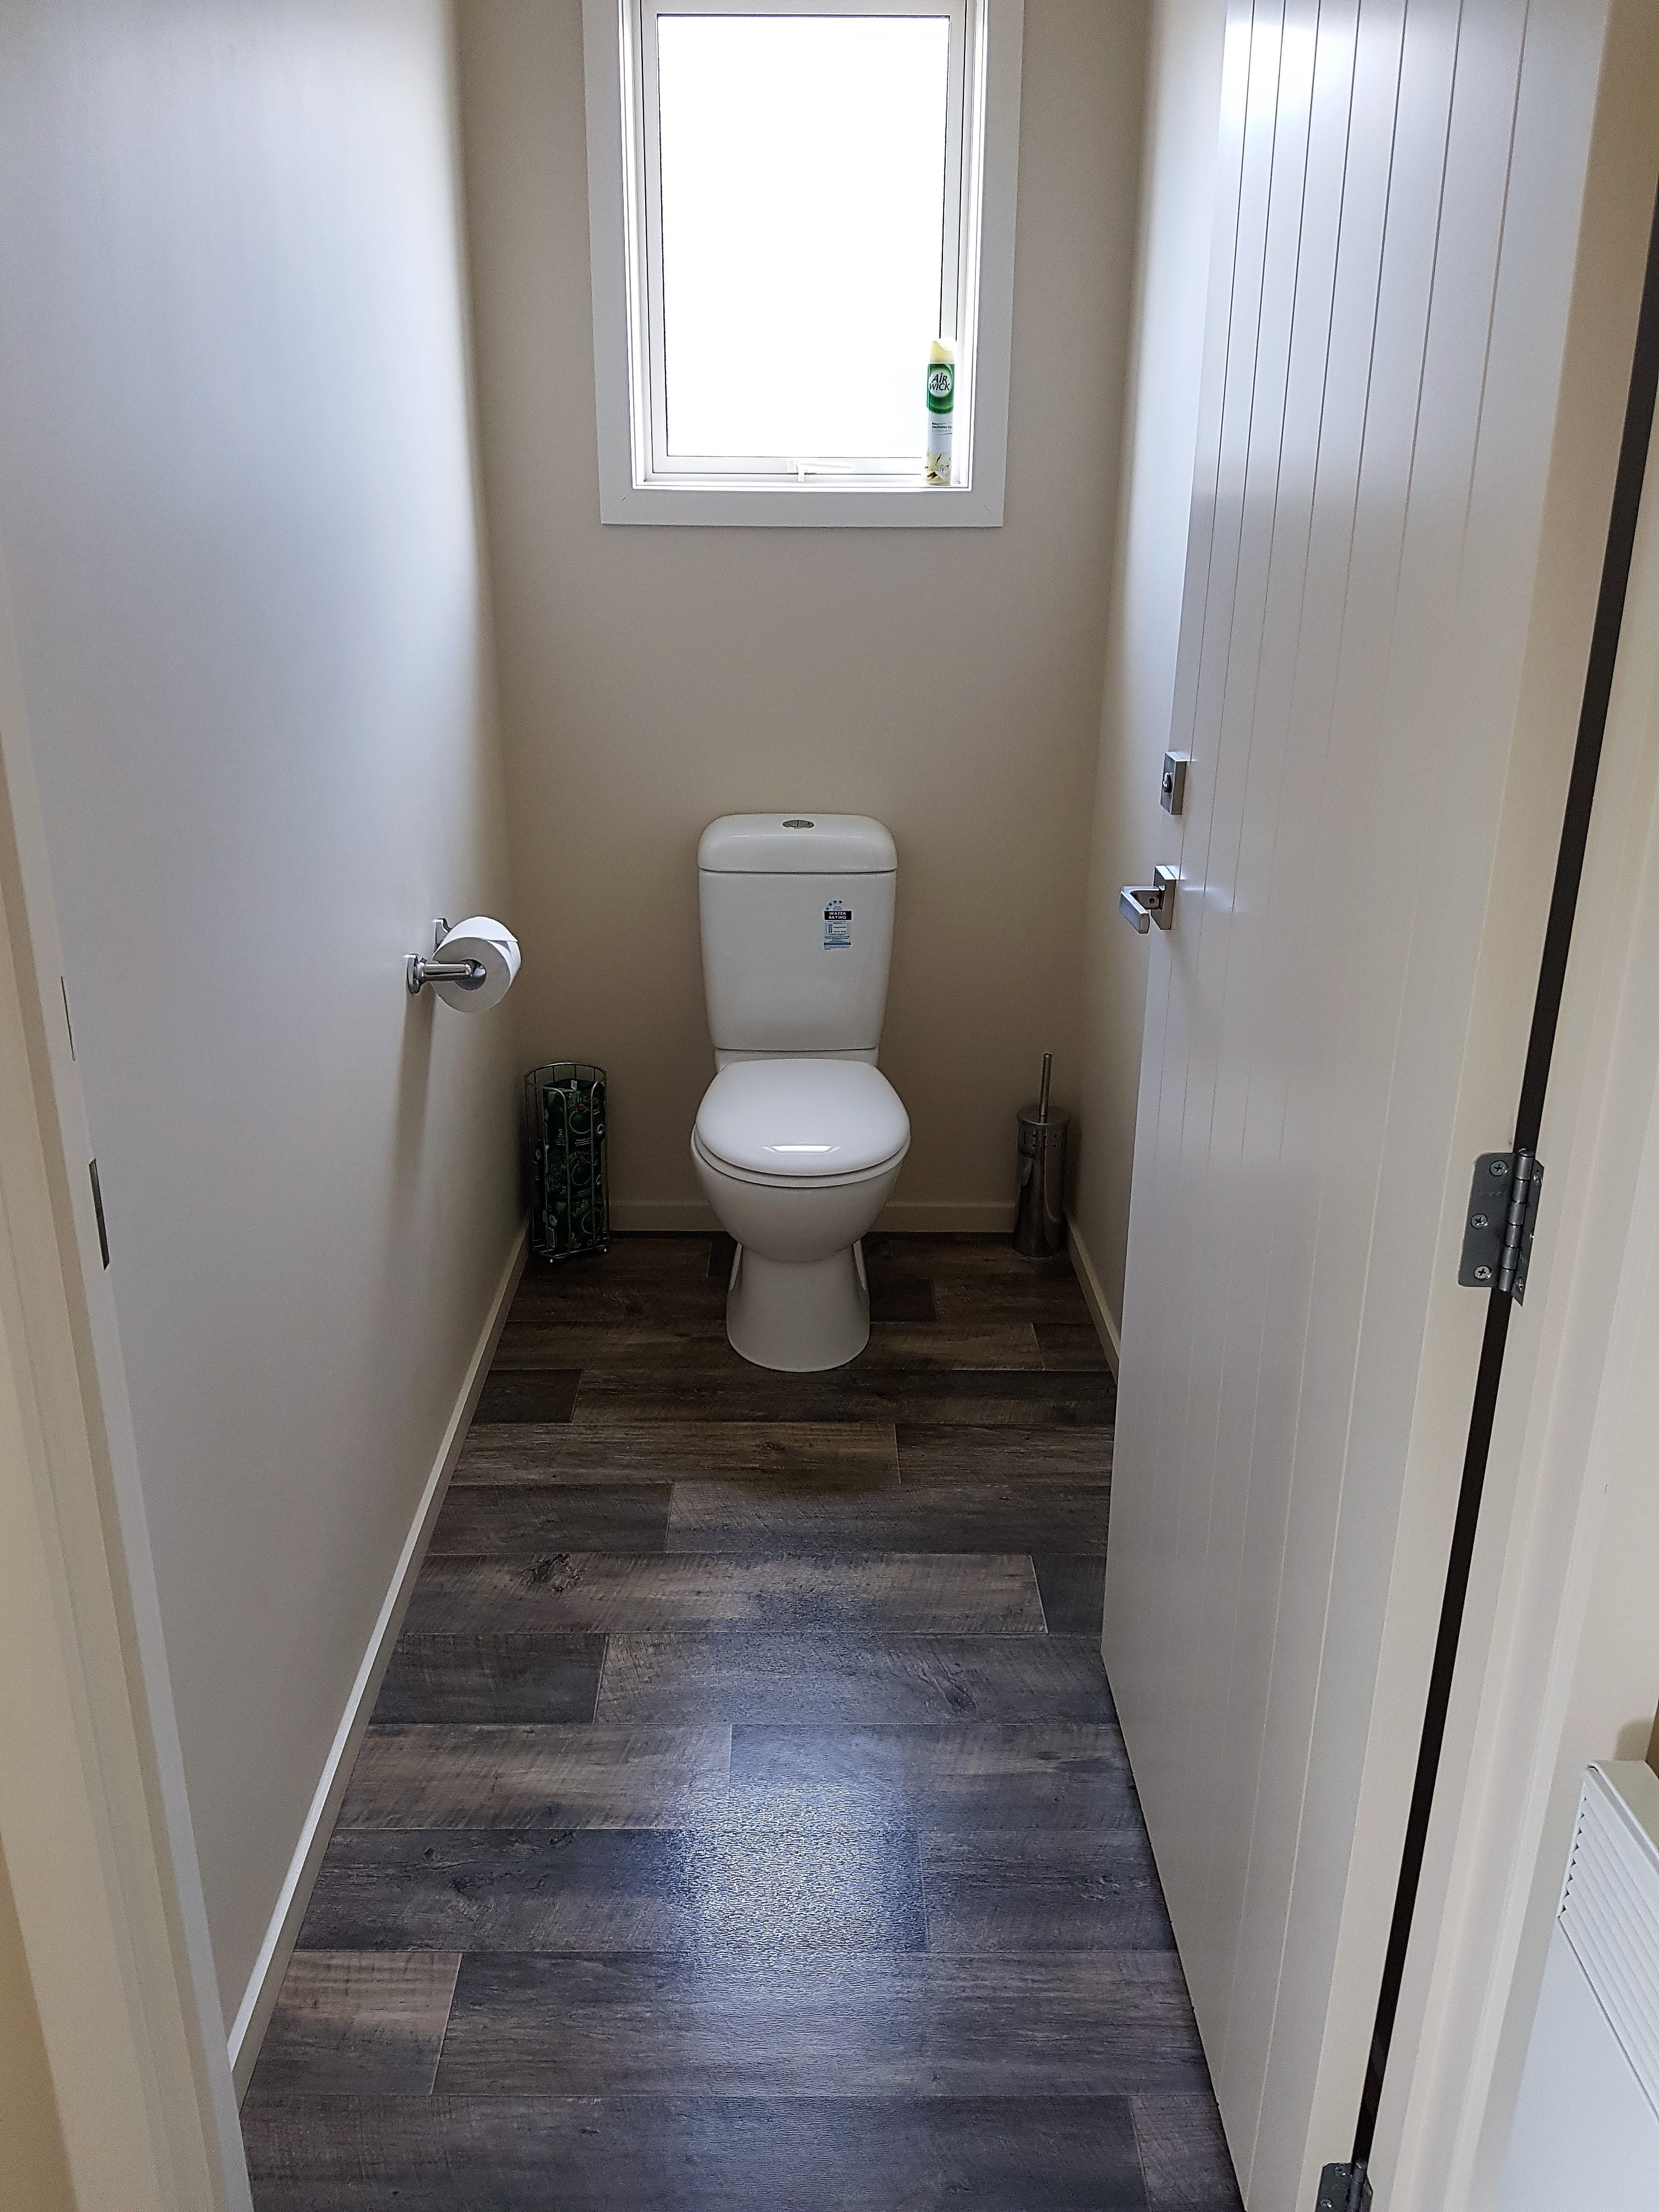 Upstairs two bedroom toilet